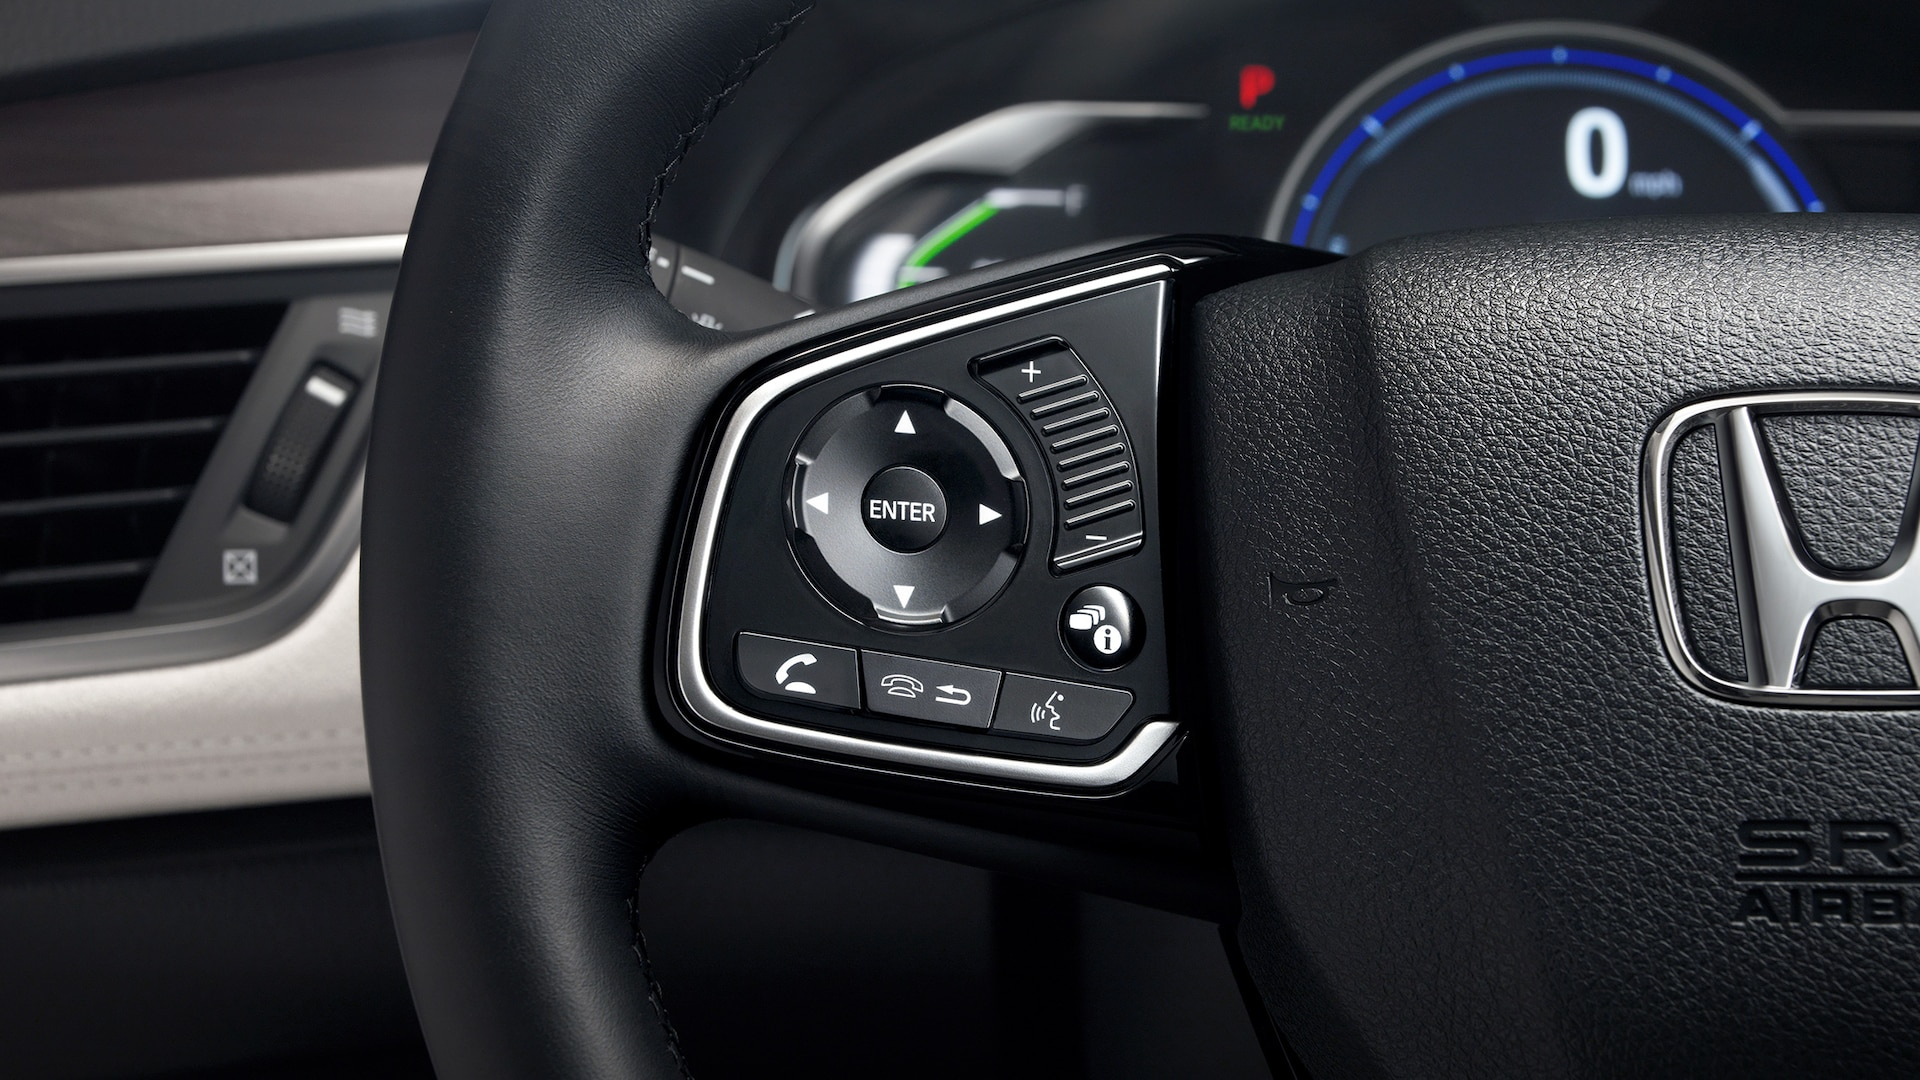 Detail of touch-sensitive steering wheel-mounted controls for 2020 Honda Clarity Fuel Cell.